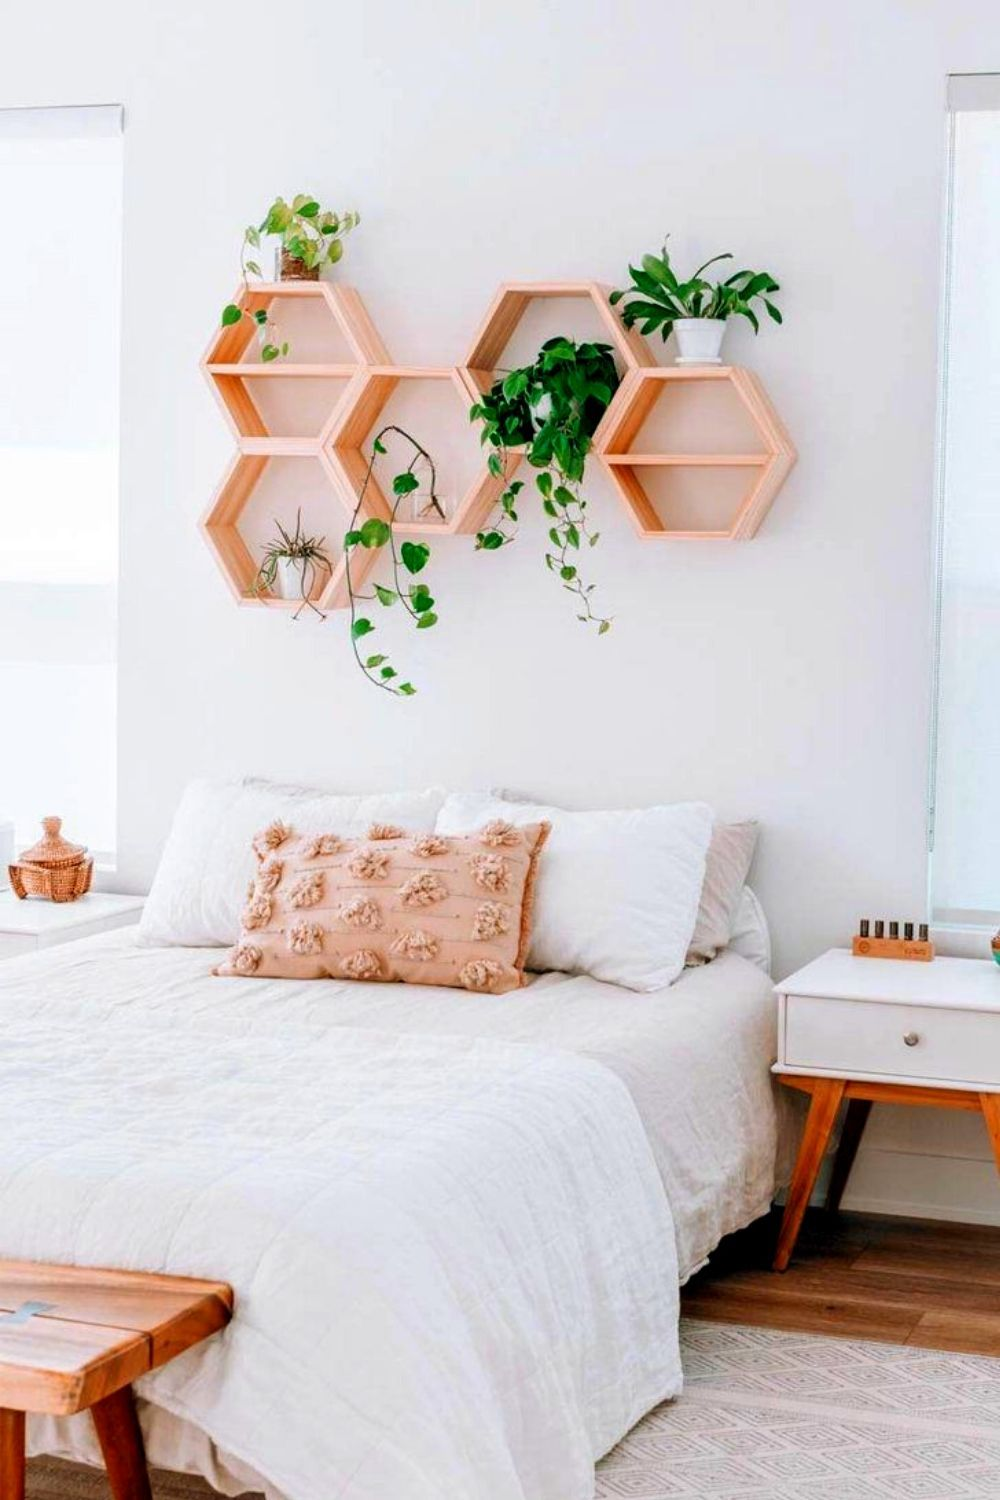 If you want to create a minimalist bedroom interior, you should not ignore the interior design. It is true that the bedroom is a place to sleep, but good design, aesthetic, and according to your taste can certainly make the room more pleasant to live in..#bedroom#bedroomideas#bedroomdecor#minimalistbedroom#bedroominterior#bedroominteriordesign#minimalistbedroomideas#minimalistbedroomdecoration